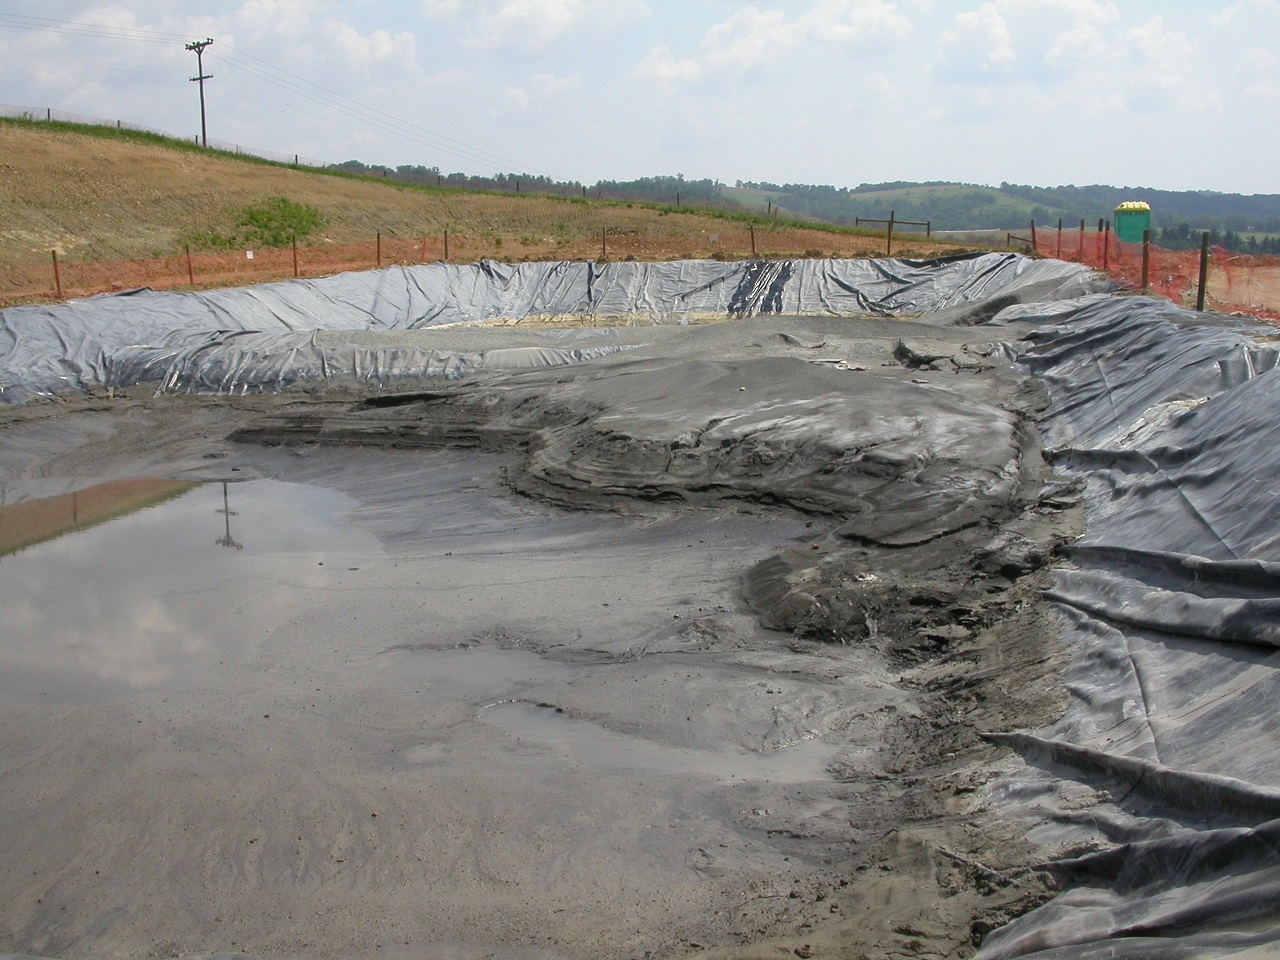 Forums on New Reports on the Health and Economic Impacts of Fracking in Pennsylvania17